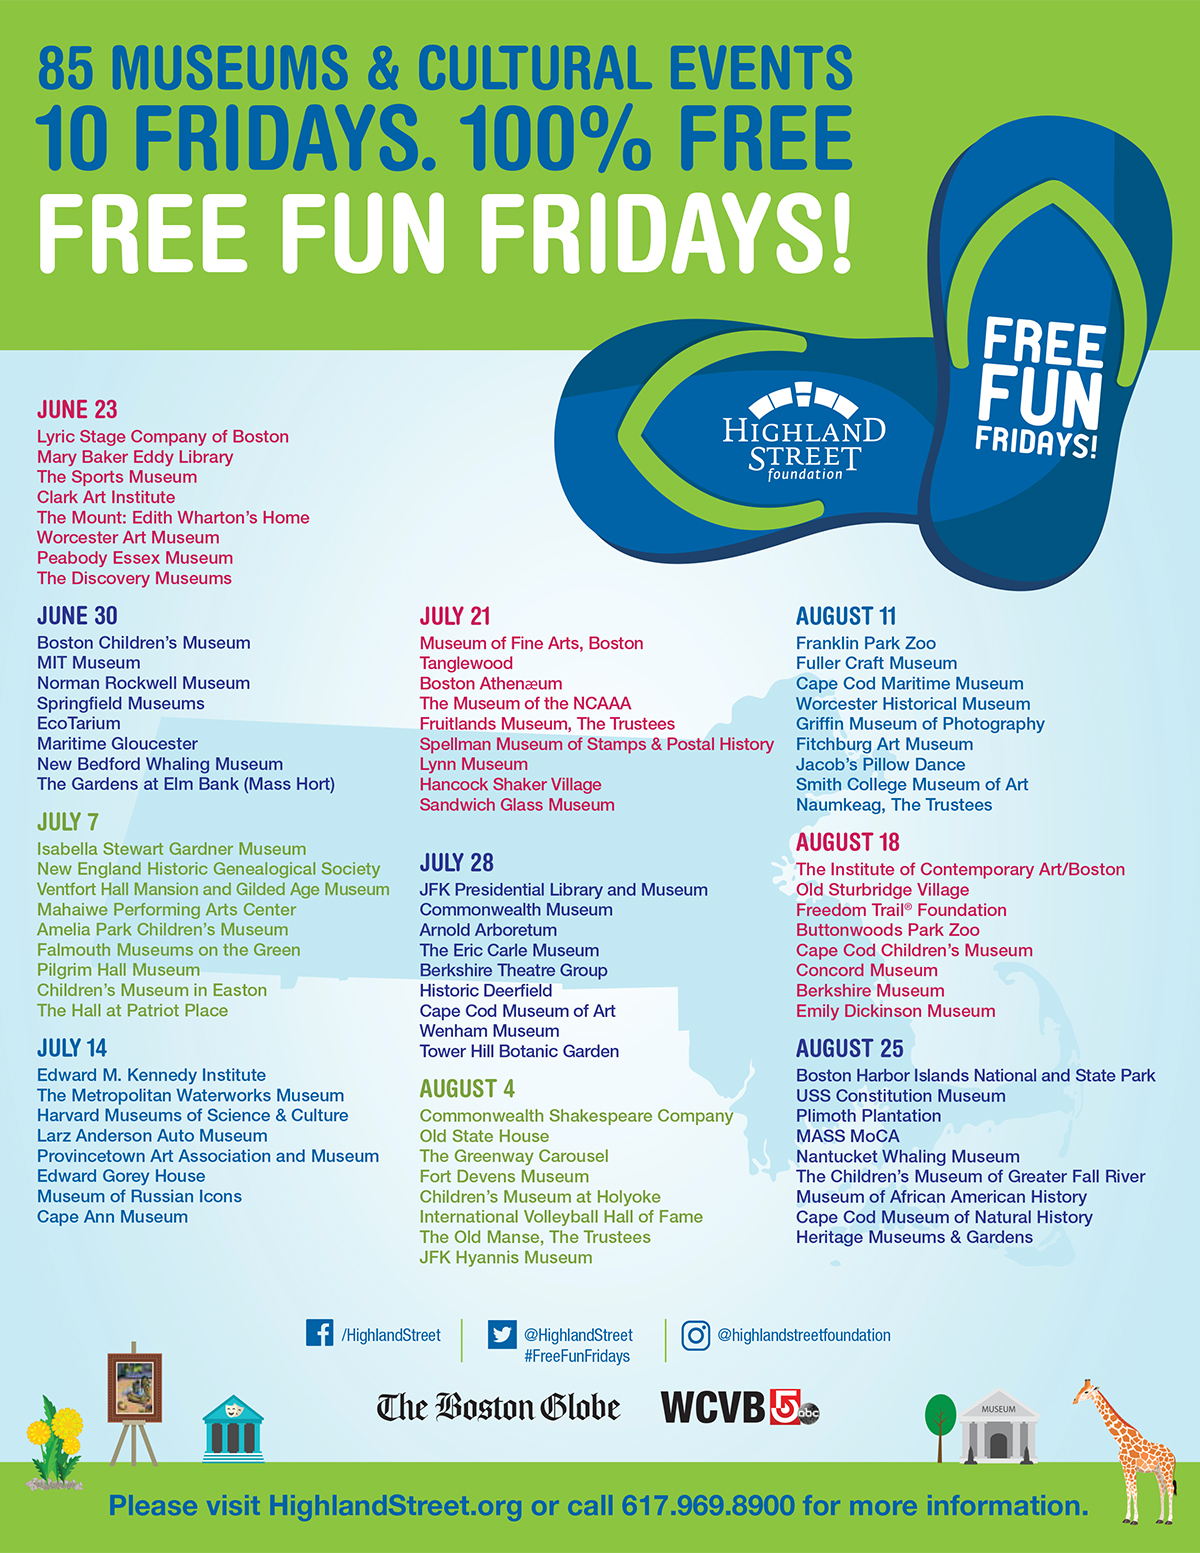 free fun fridays 2017 schedule massachusetts